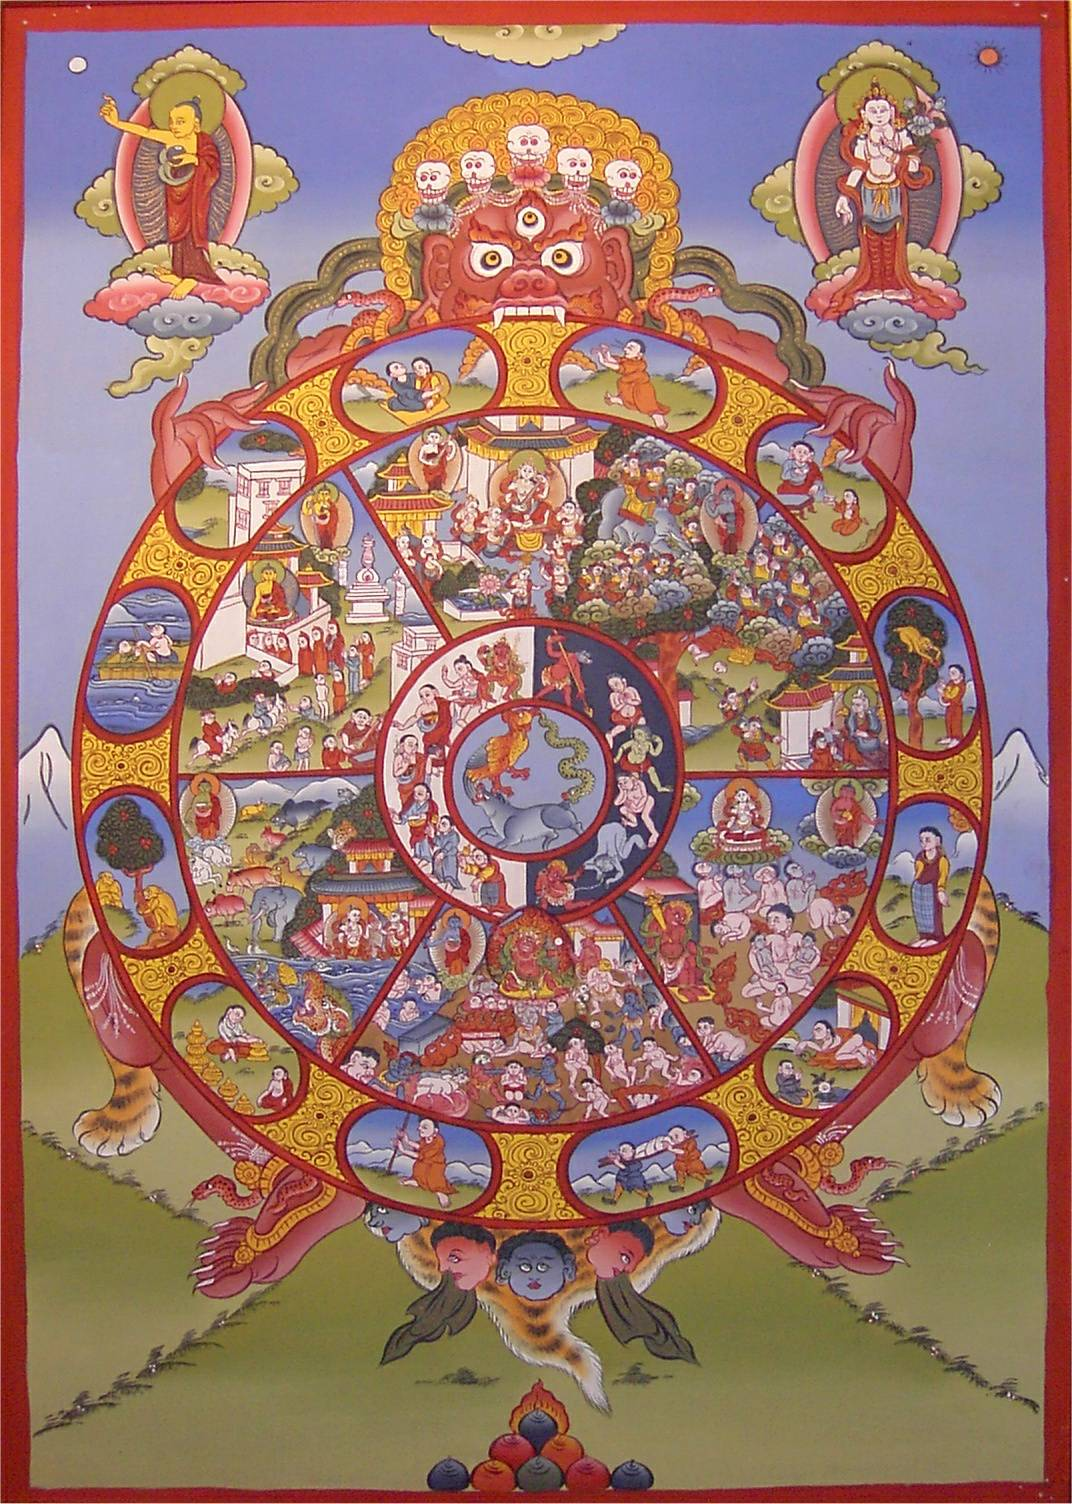 The wheel of life by Explore Tibet